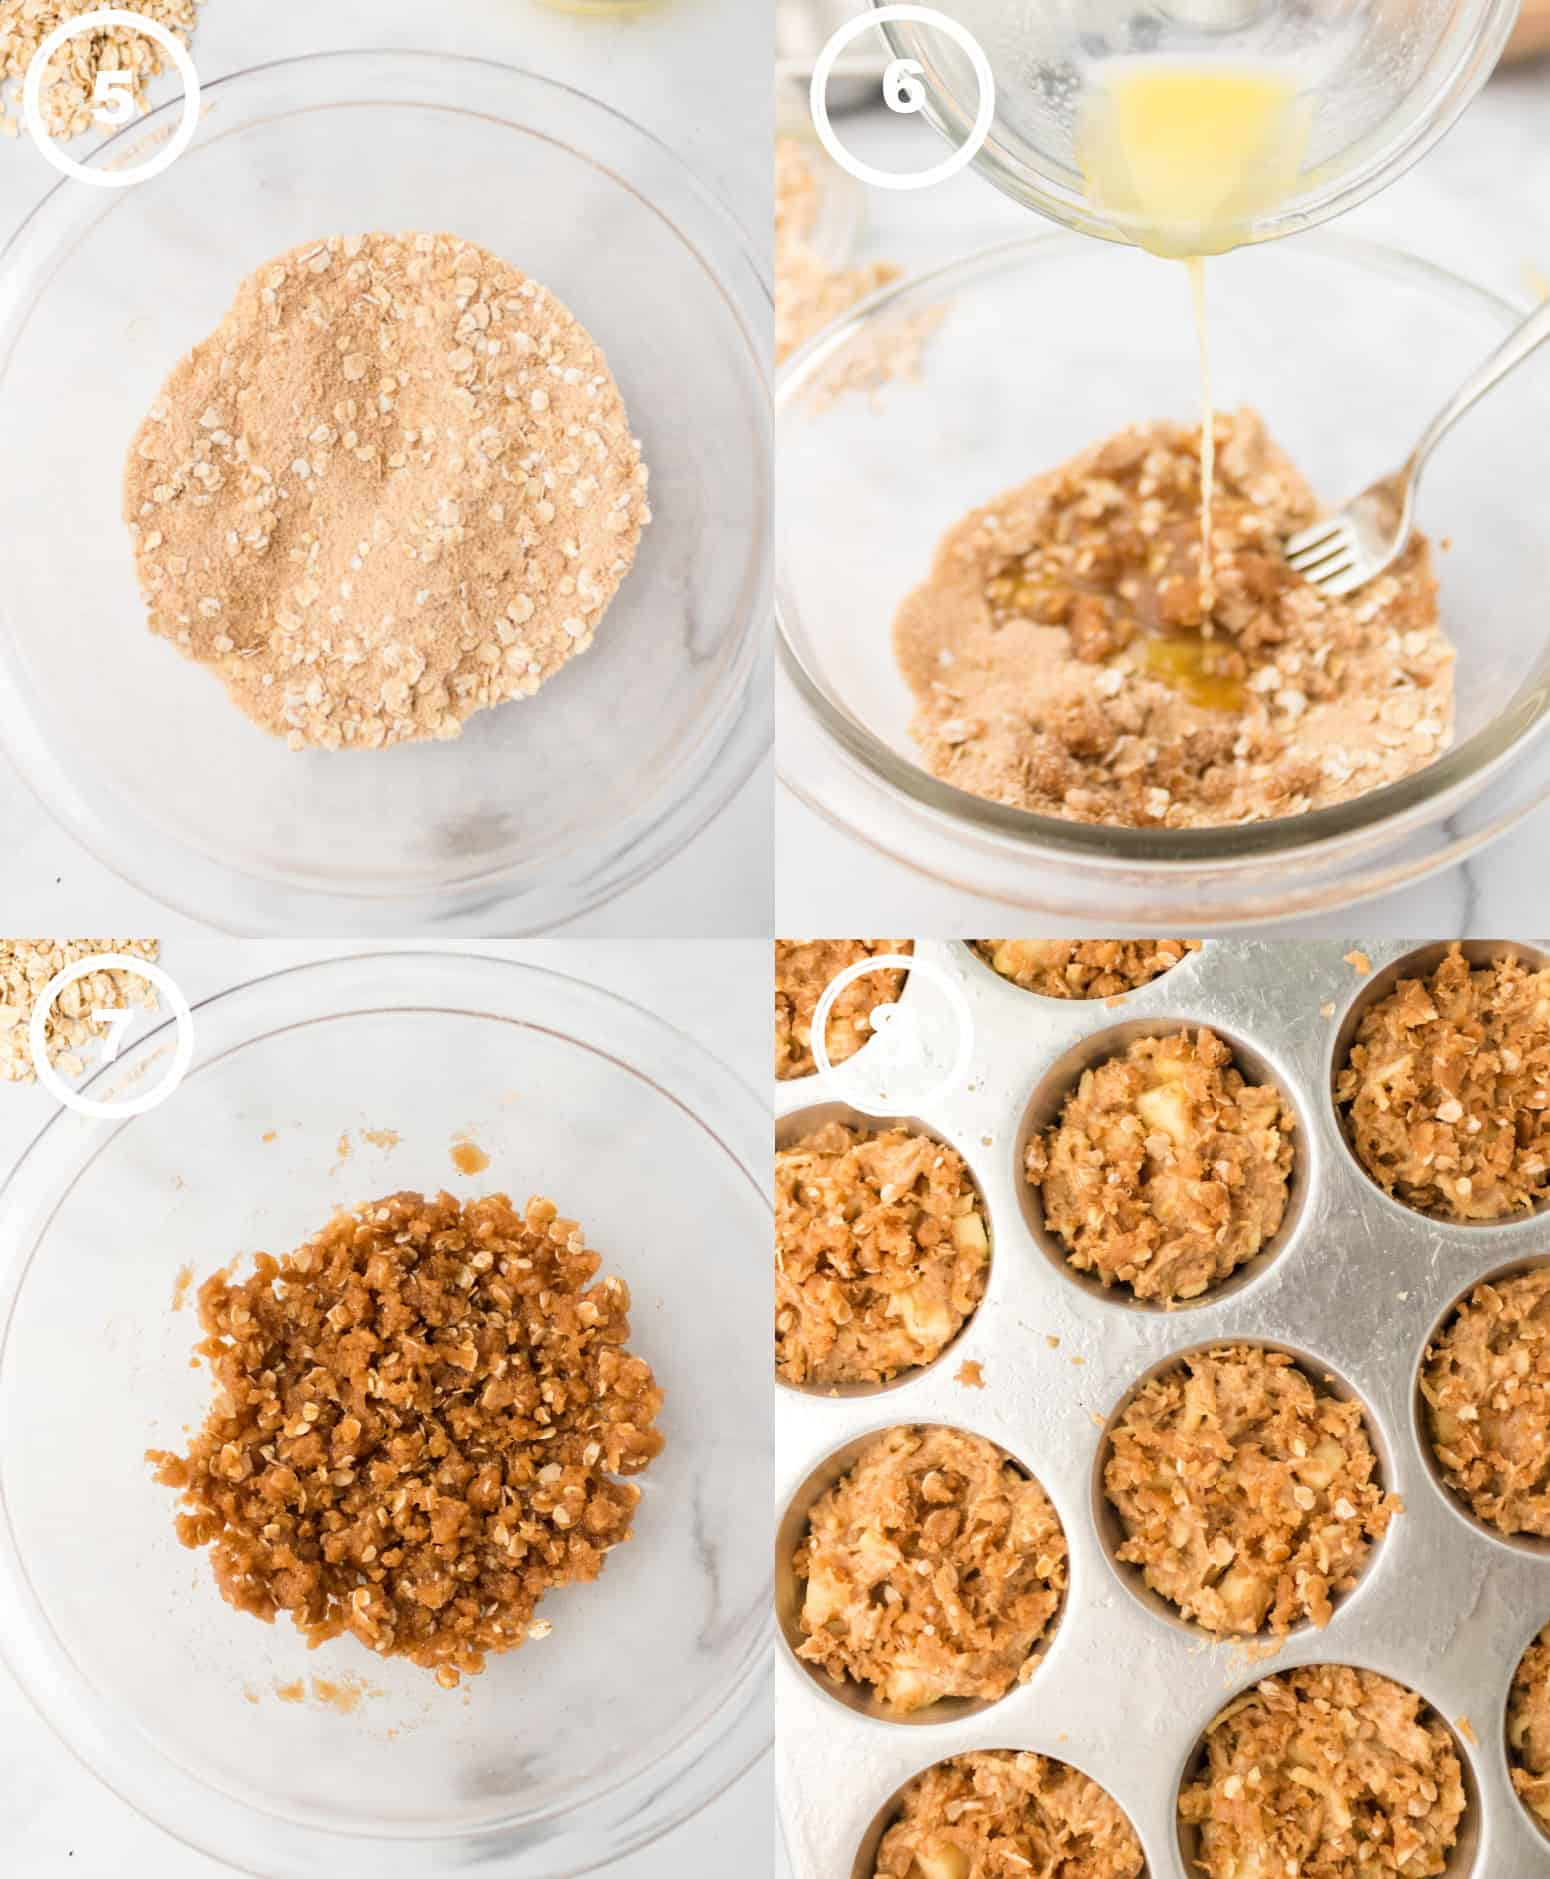 Four process photos. First one, oats in a small bowl, Second one, melted butter poured on top. Third one, crumble mixture all mixed together. Fourth one, crumble placed on top of the muffins.